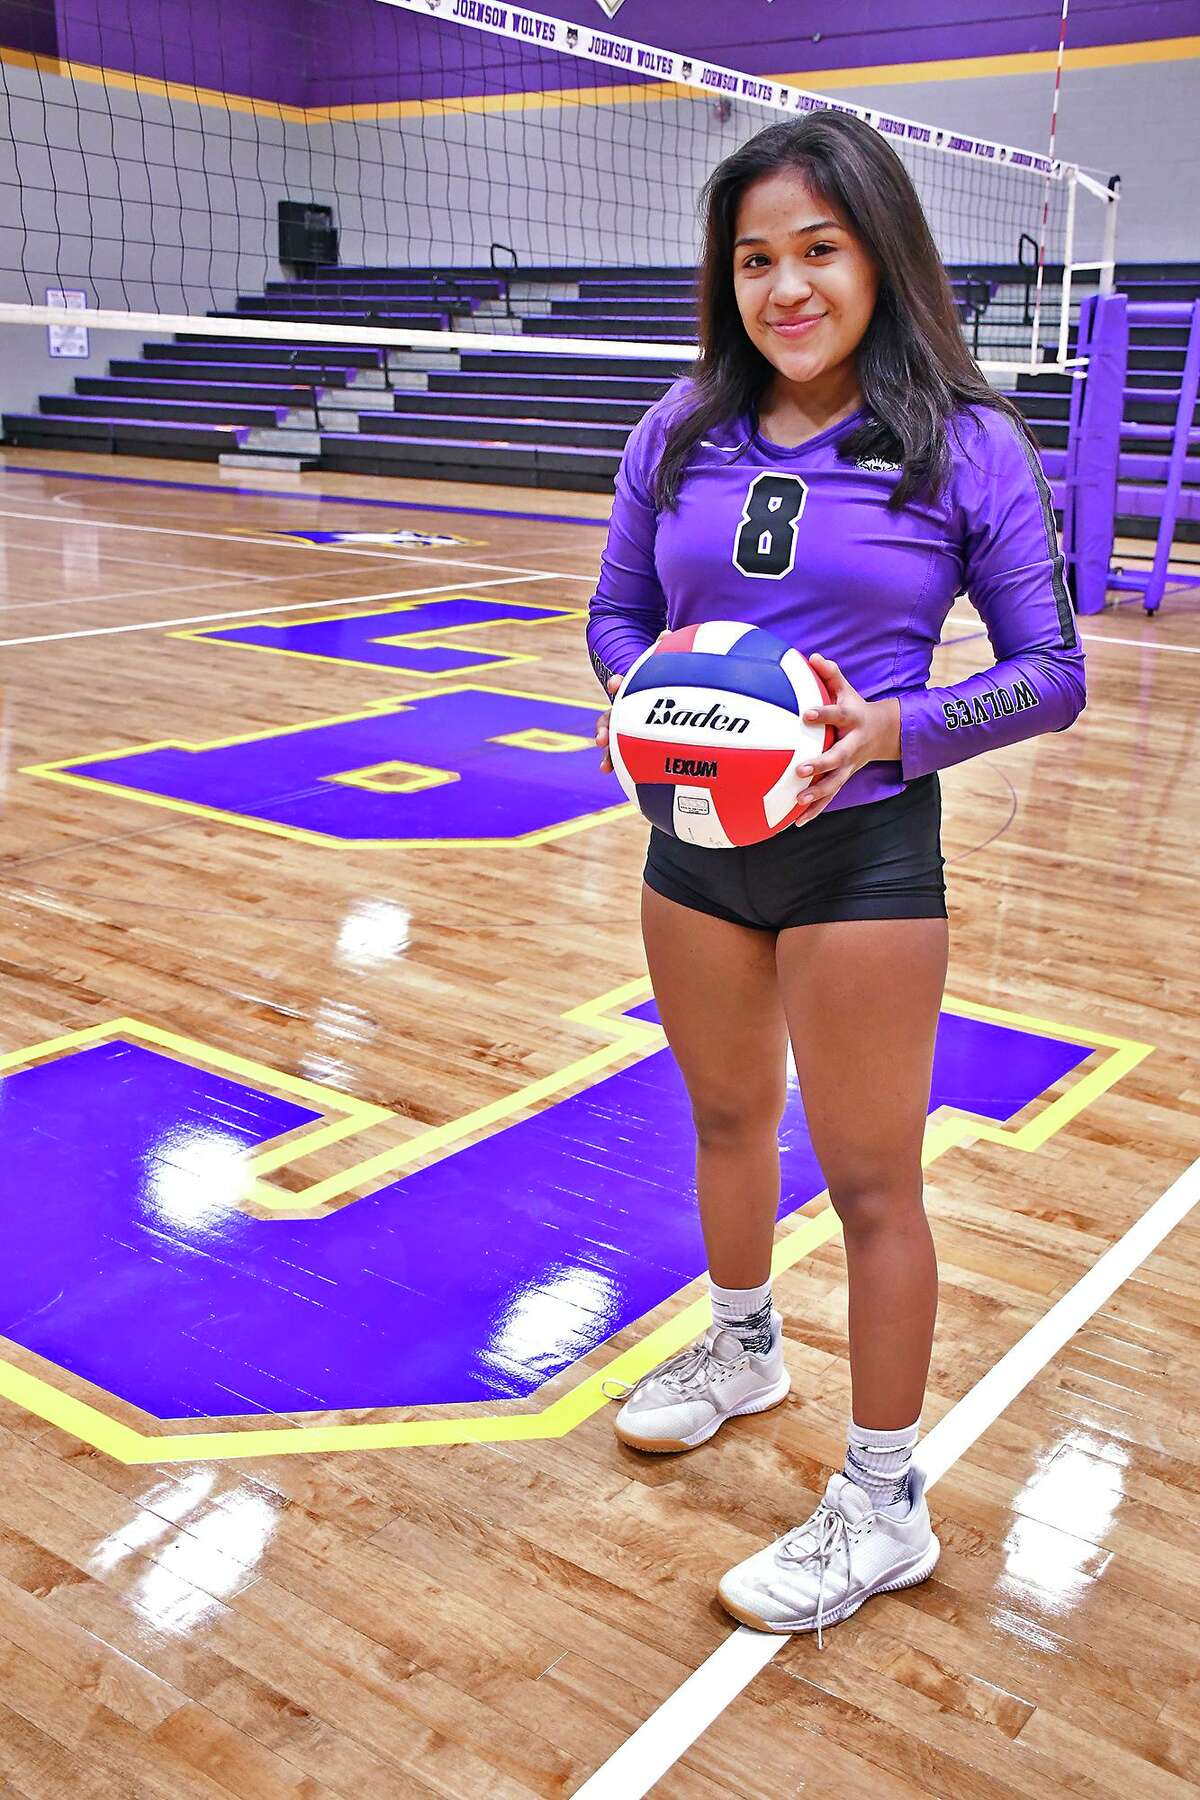 Marianna Gamboa, who was LBJ's water girl in fifth grade, has earned a starting spot in her freshman year.